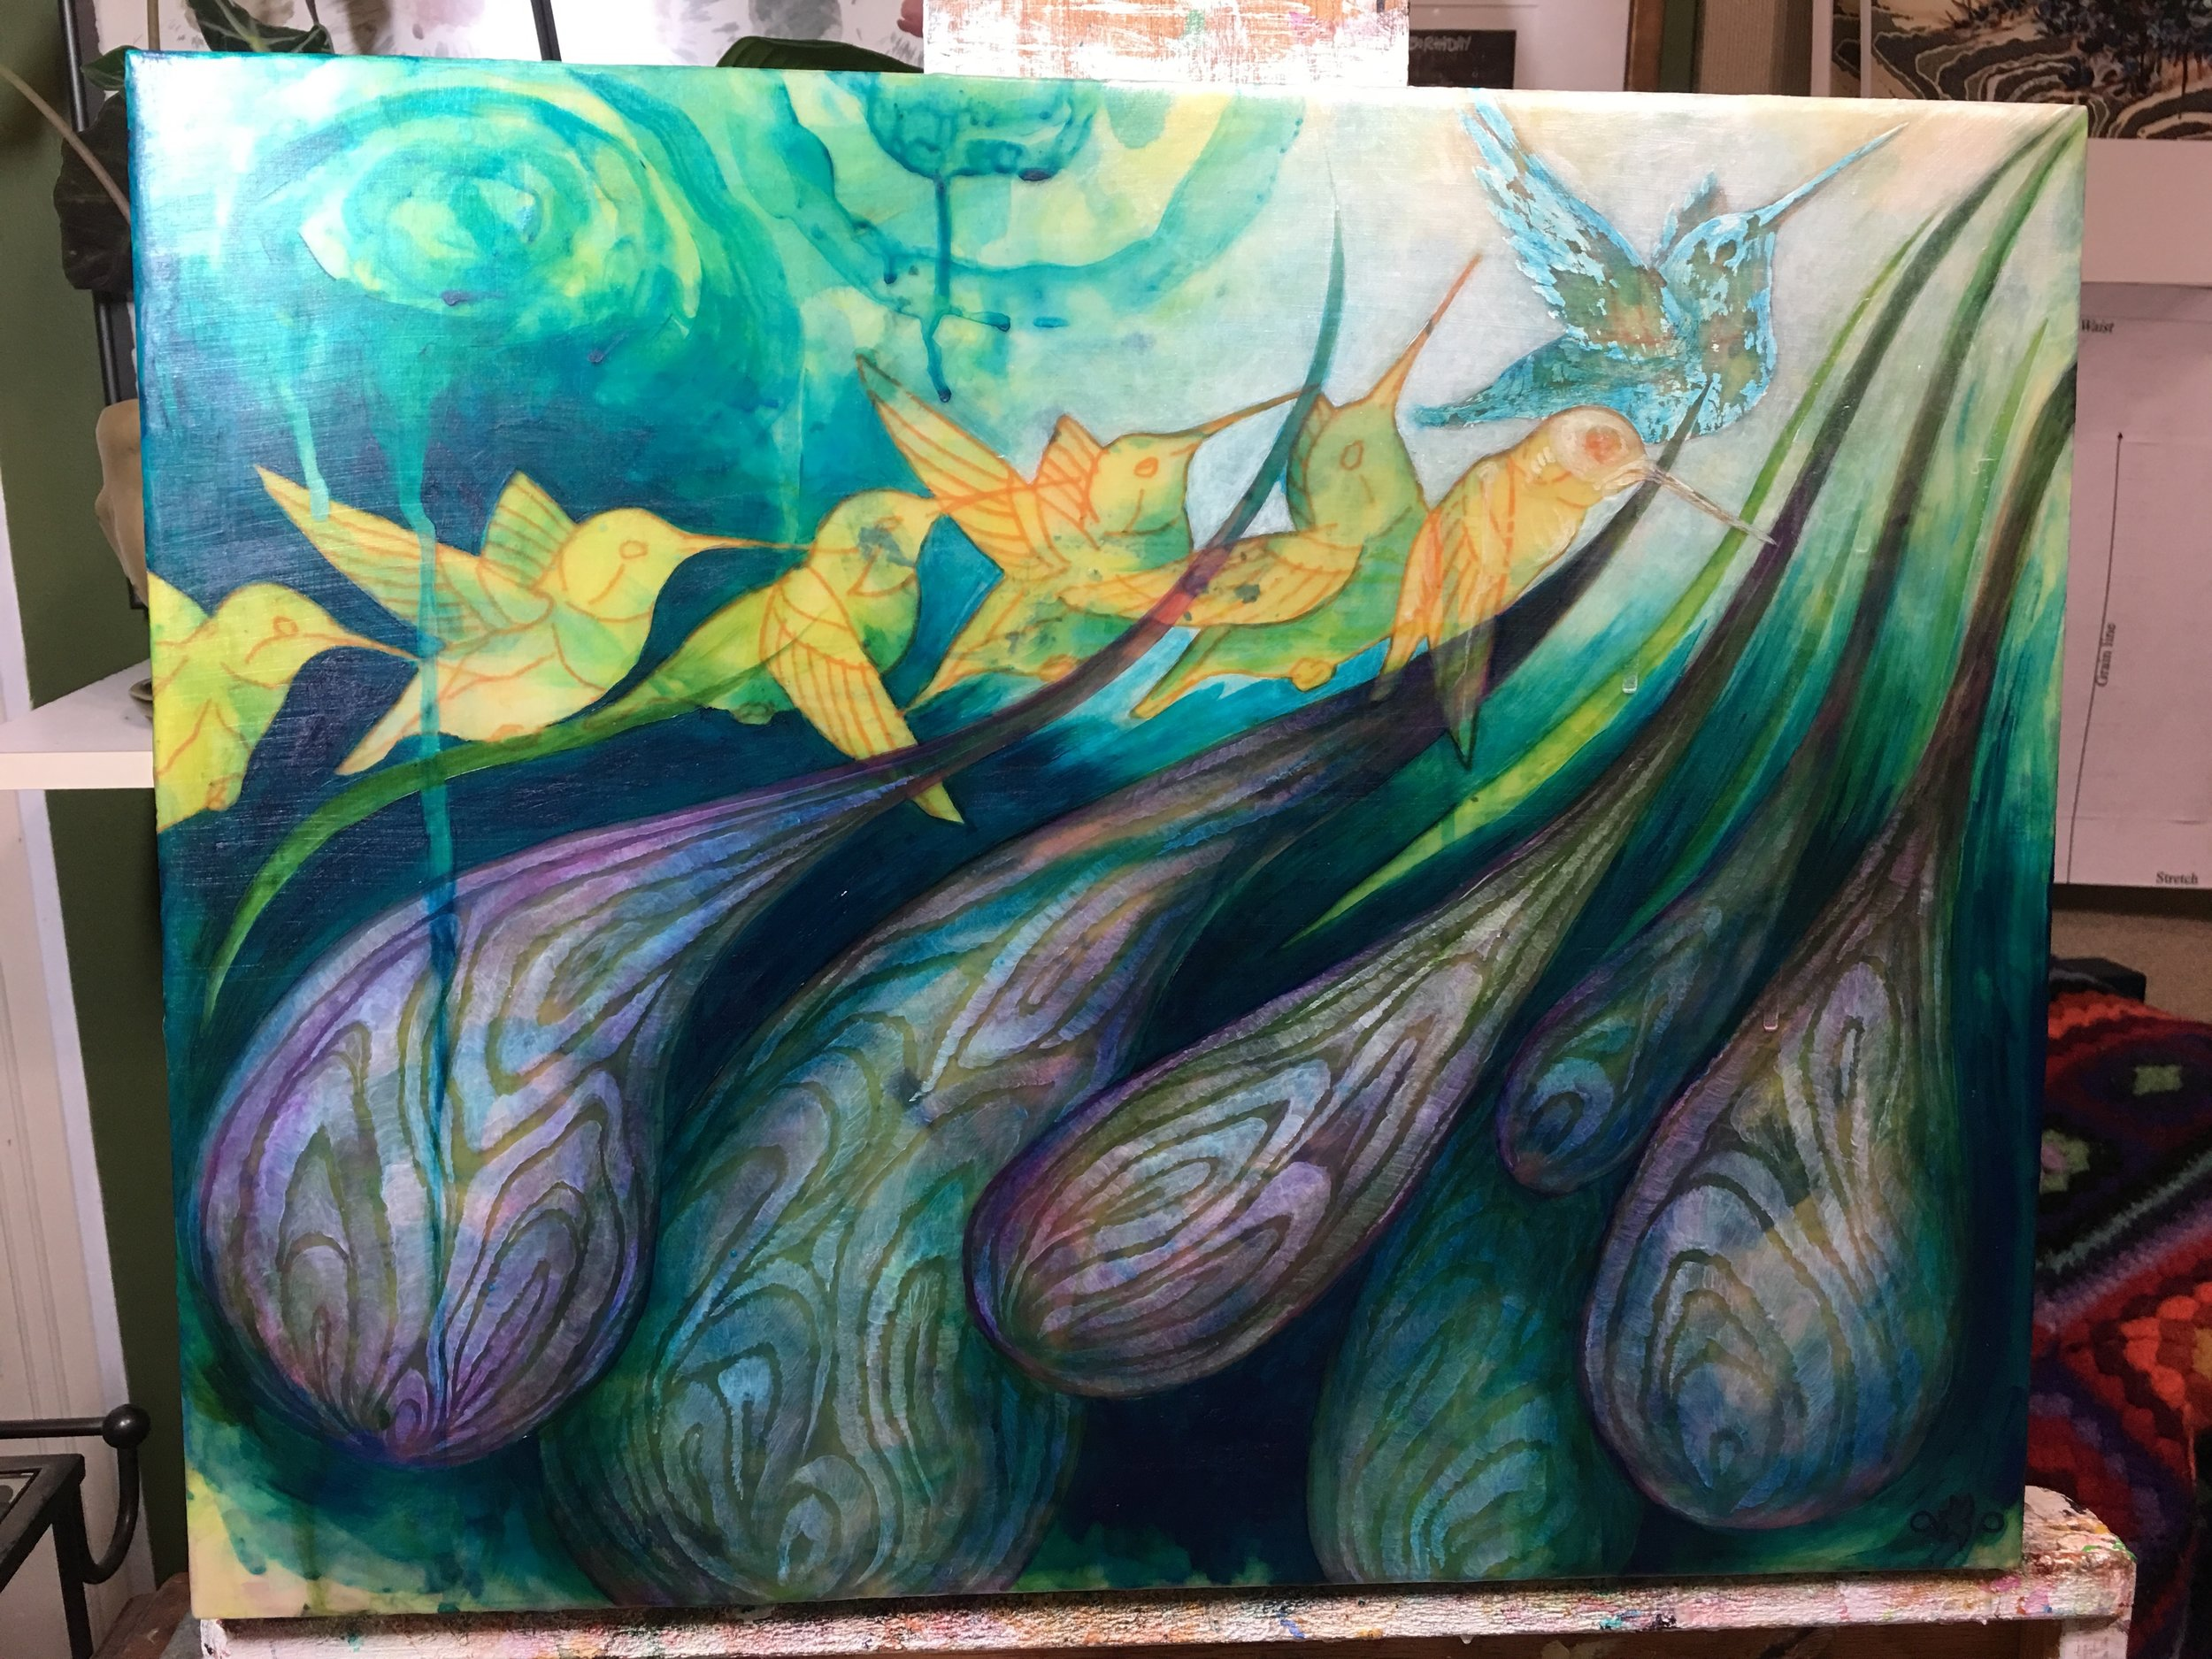 brought the Turquoise Deep into other areas of the piece to darken the purples around the onions.